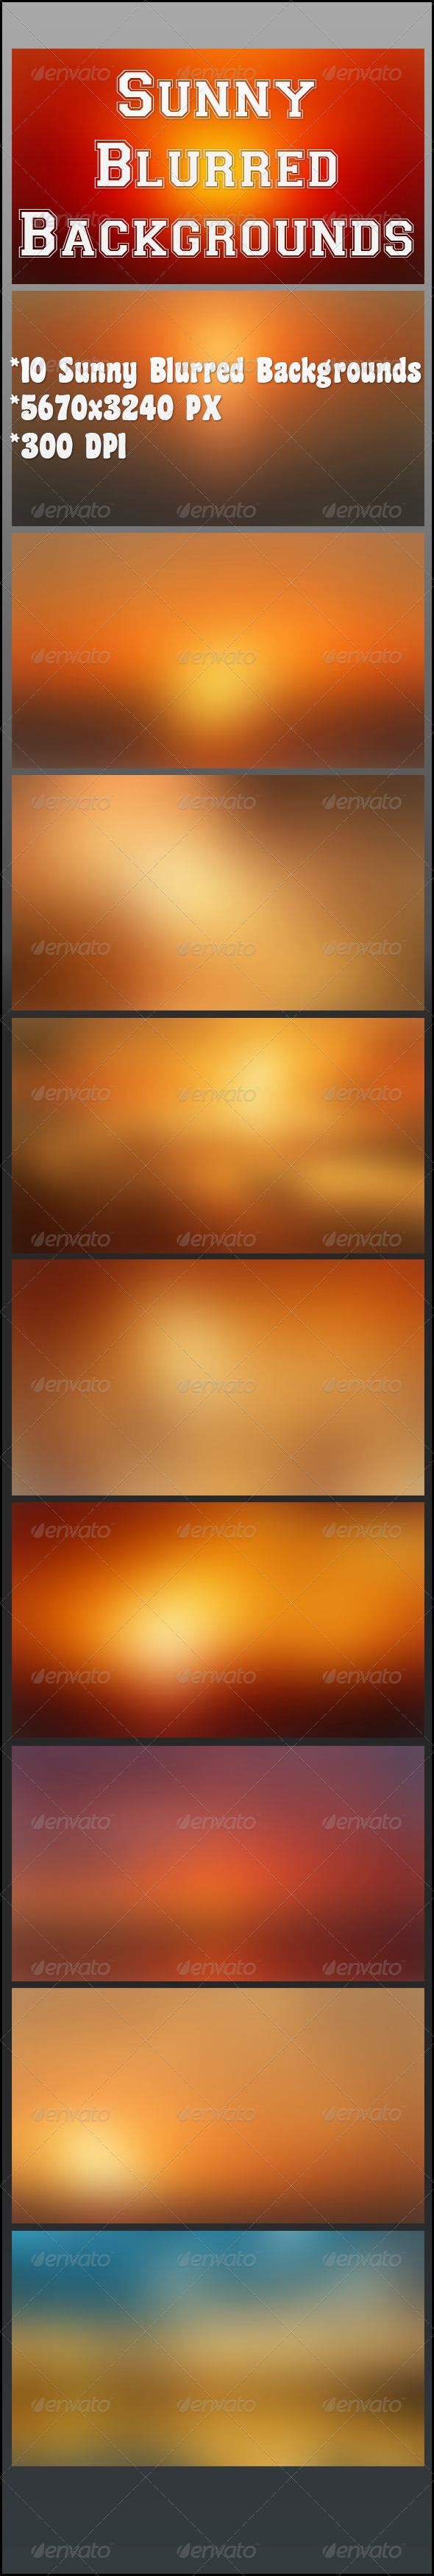 GraphicRiver Sunny Blurred Backgrounds 6940385